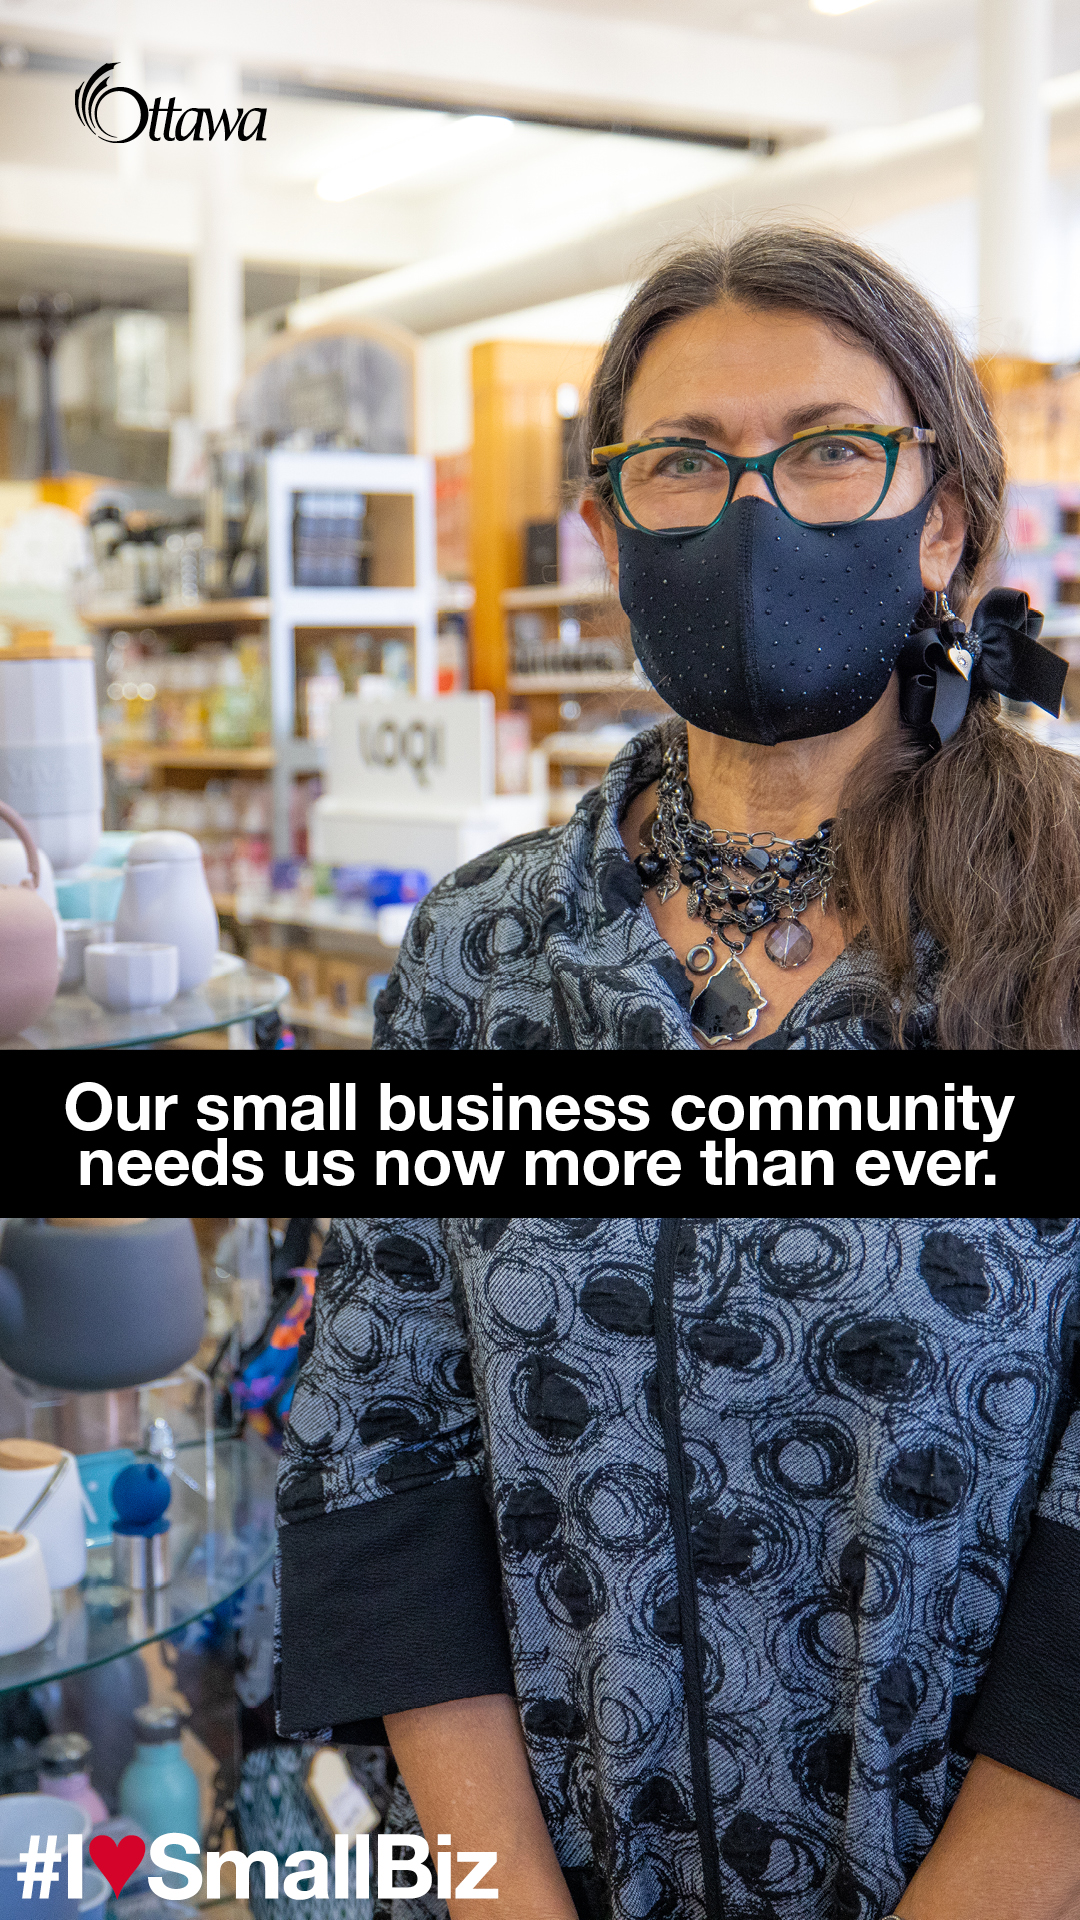 A woman wearing a mask stands in a small retail store. Our small business community needs us now more than ever.